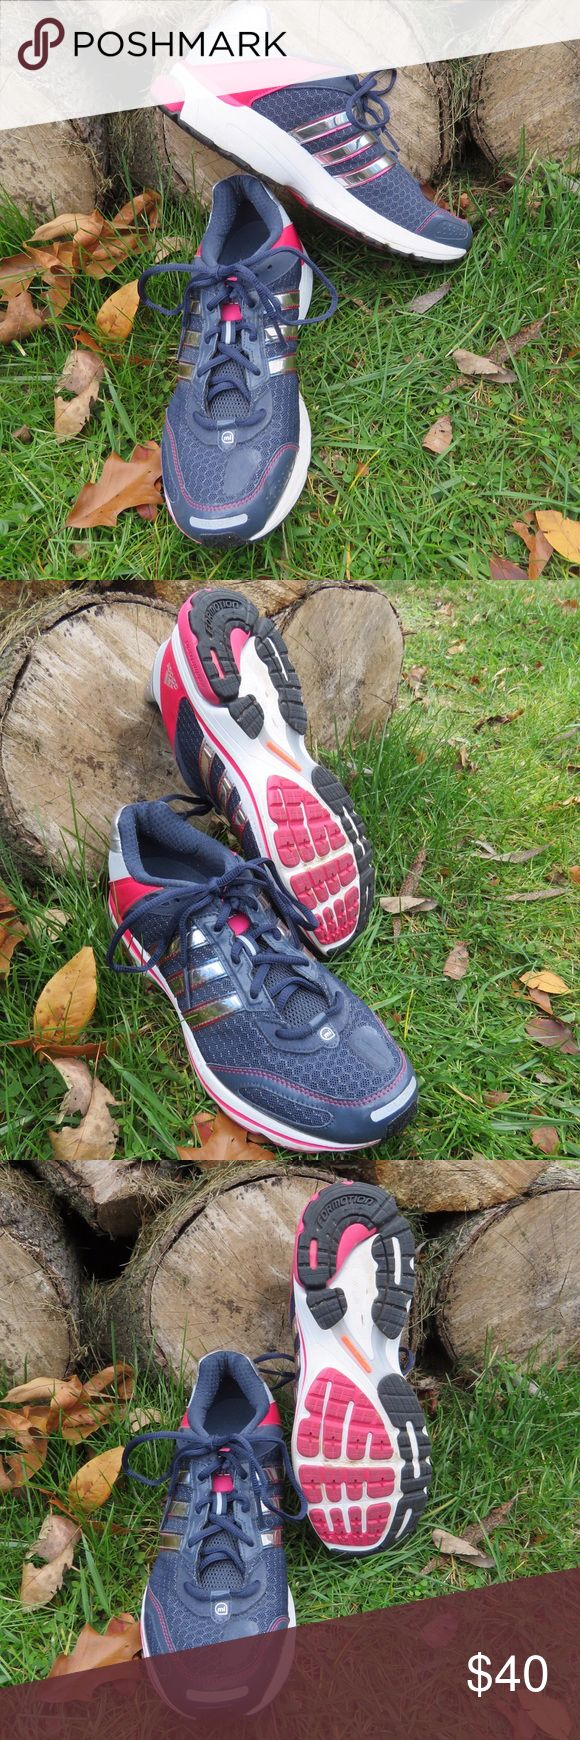 LIKE NEW - Adidas running shoes Only worn once and in great condition. Adidas Shoes Athletic Shoes